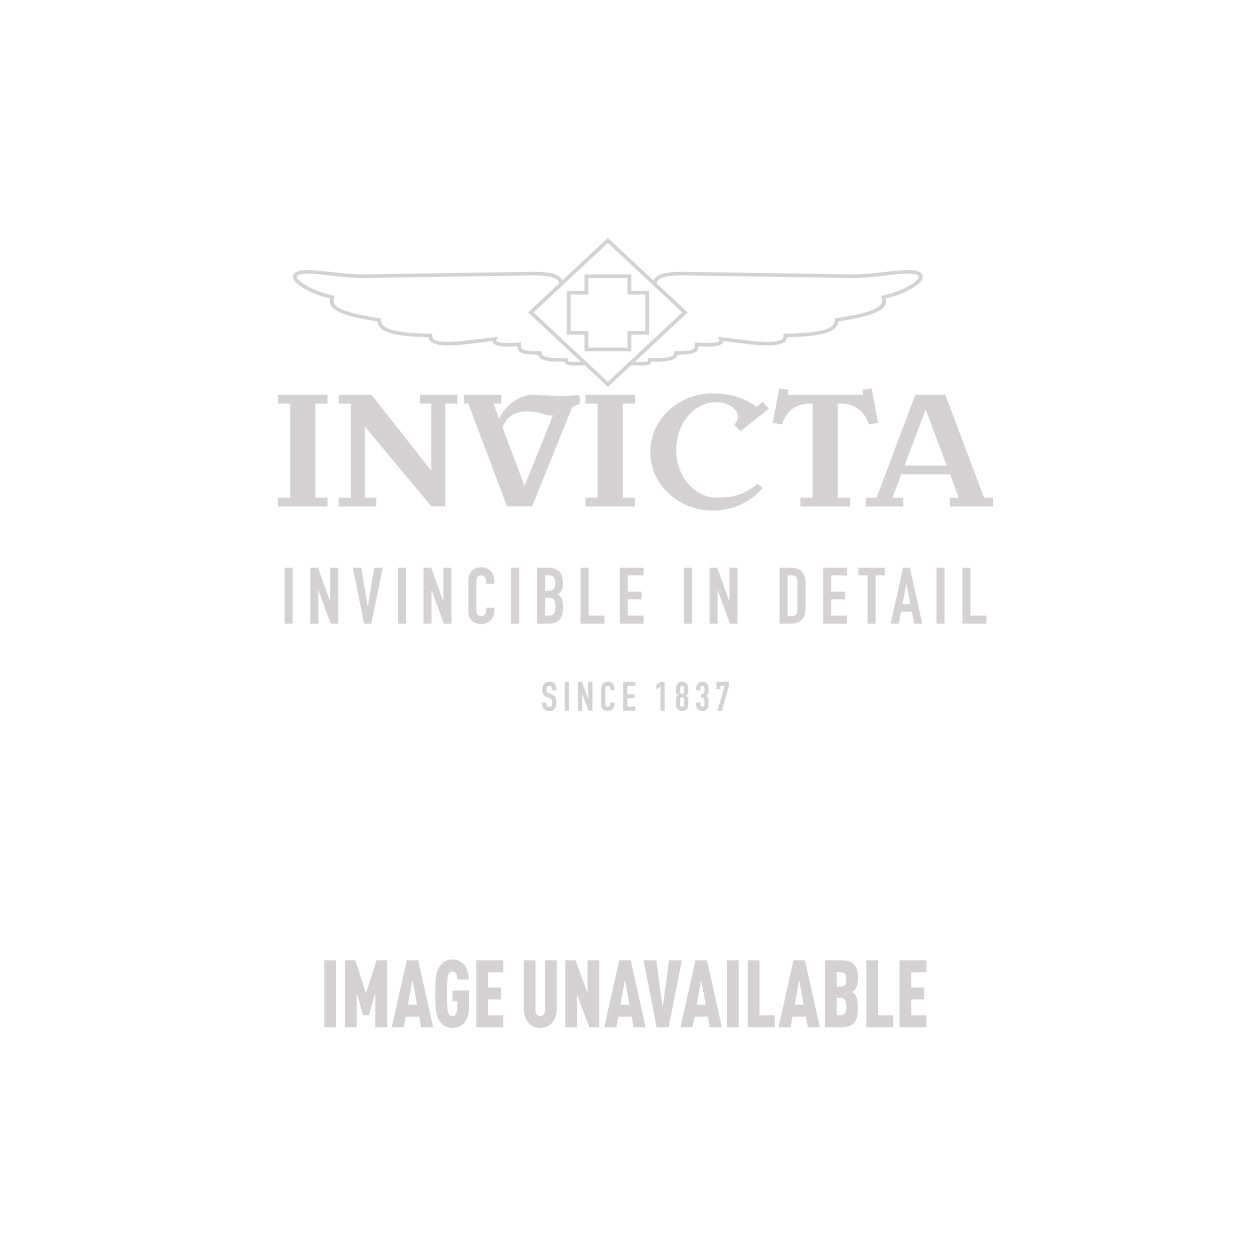 Invicta Specialty Mechanical Watch - Stainless Steel case with Blue tone Leather band - Model 17259